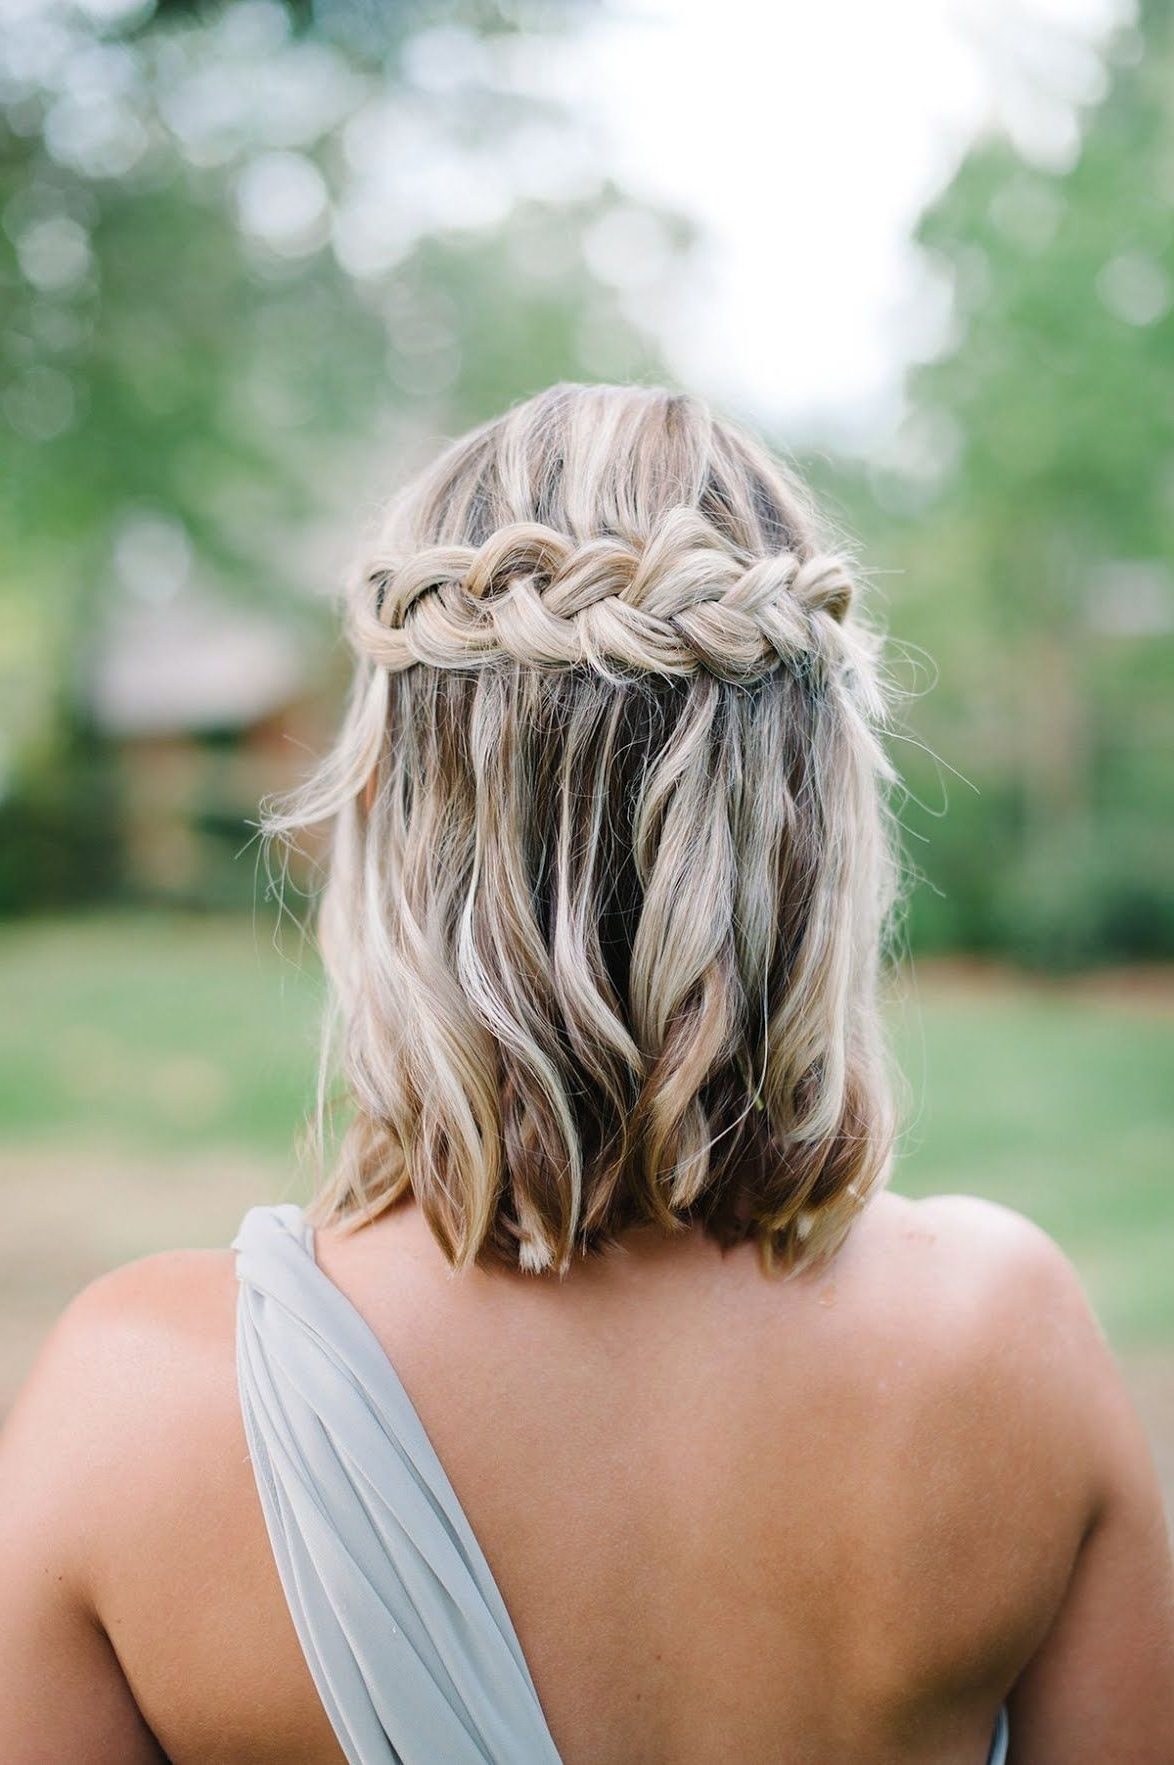 Widely Used Cute Wedding Hairstyles For Bridesmaids Pertaining To Simple Wedding Hairstyles Best Photos – Wedding Hairstyles (View 15 of 15)